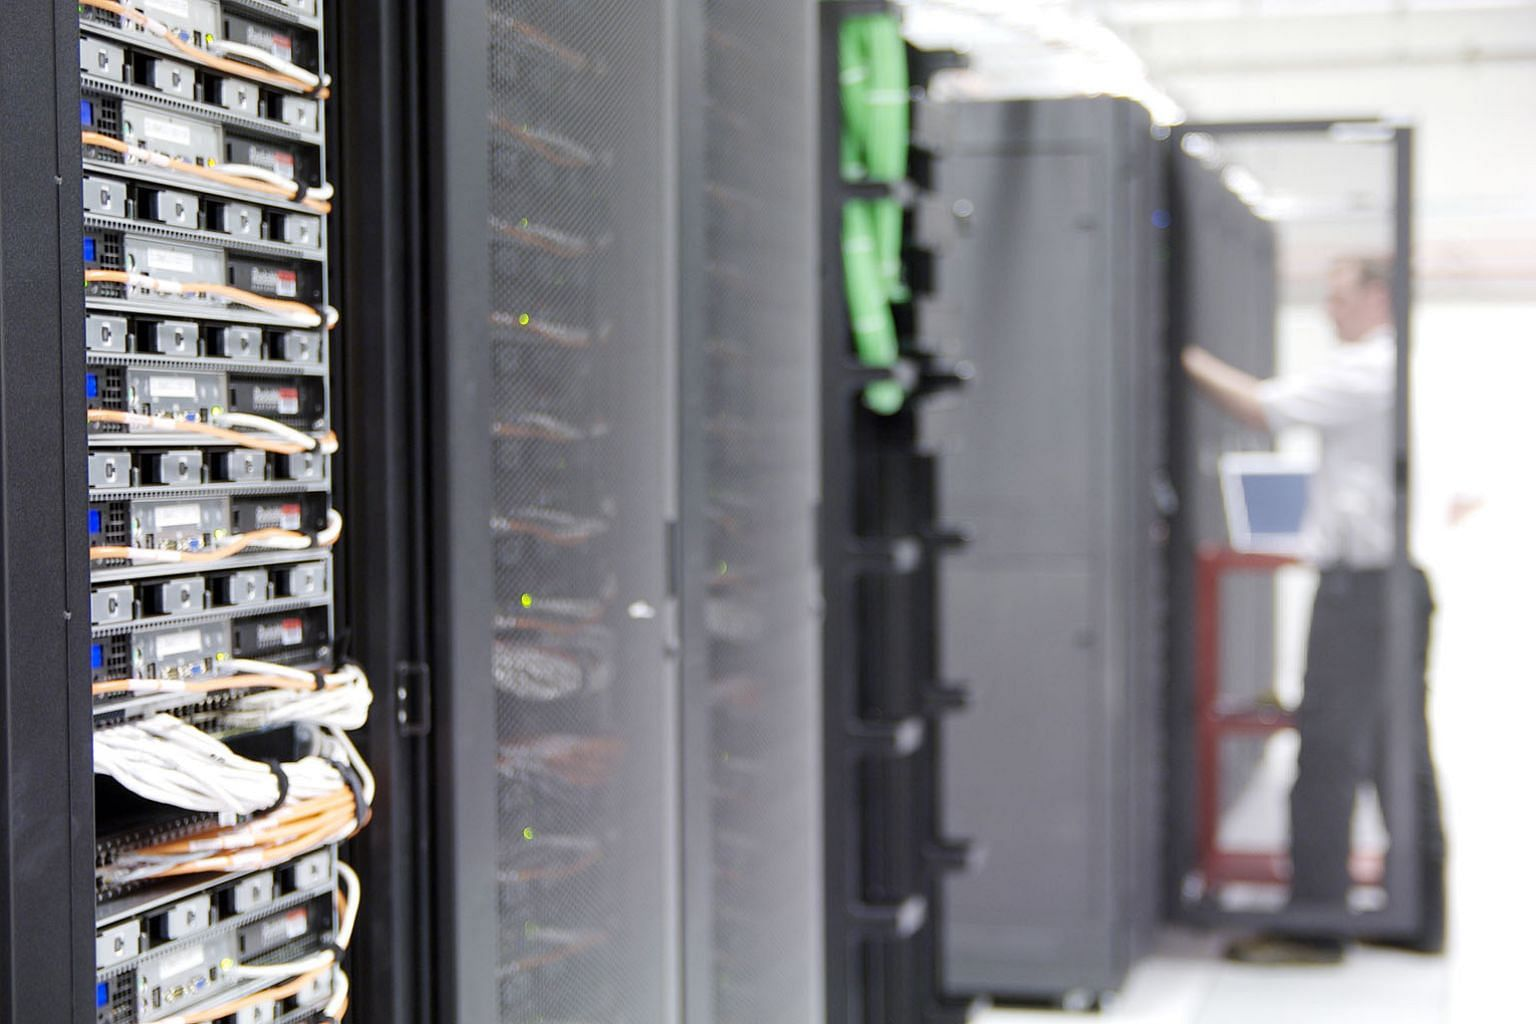 Singapore holds the biggest capacity in the data centre market regionally, with a total of 370MW of IT power supply among co-location operators, noted Cushman & Wakefield.